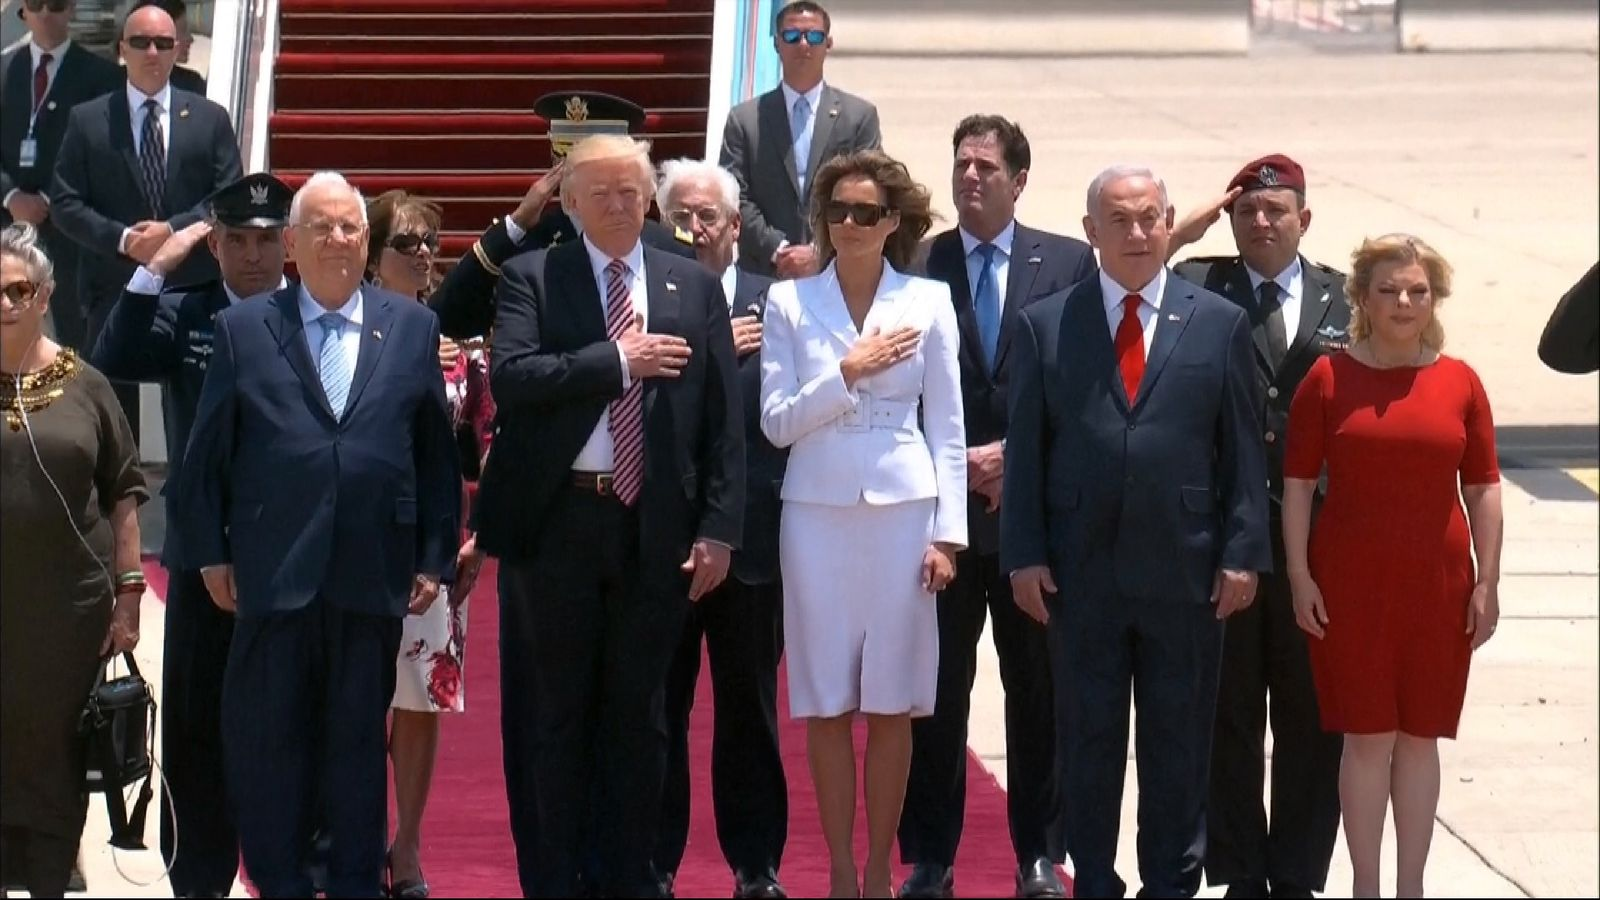 The Trumps and Netanyahus salute the US and Israeli national anthems